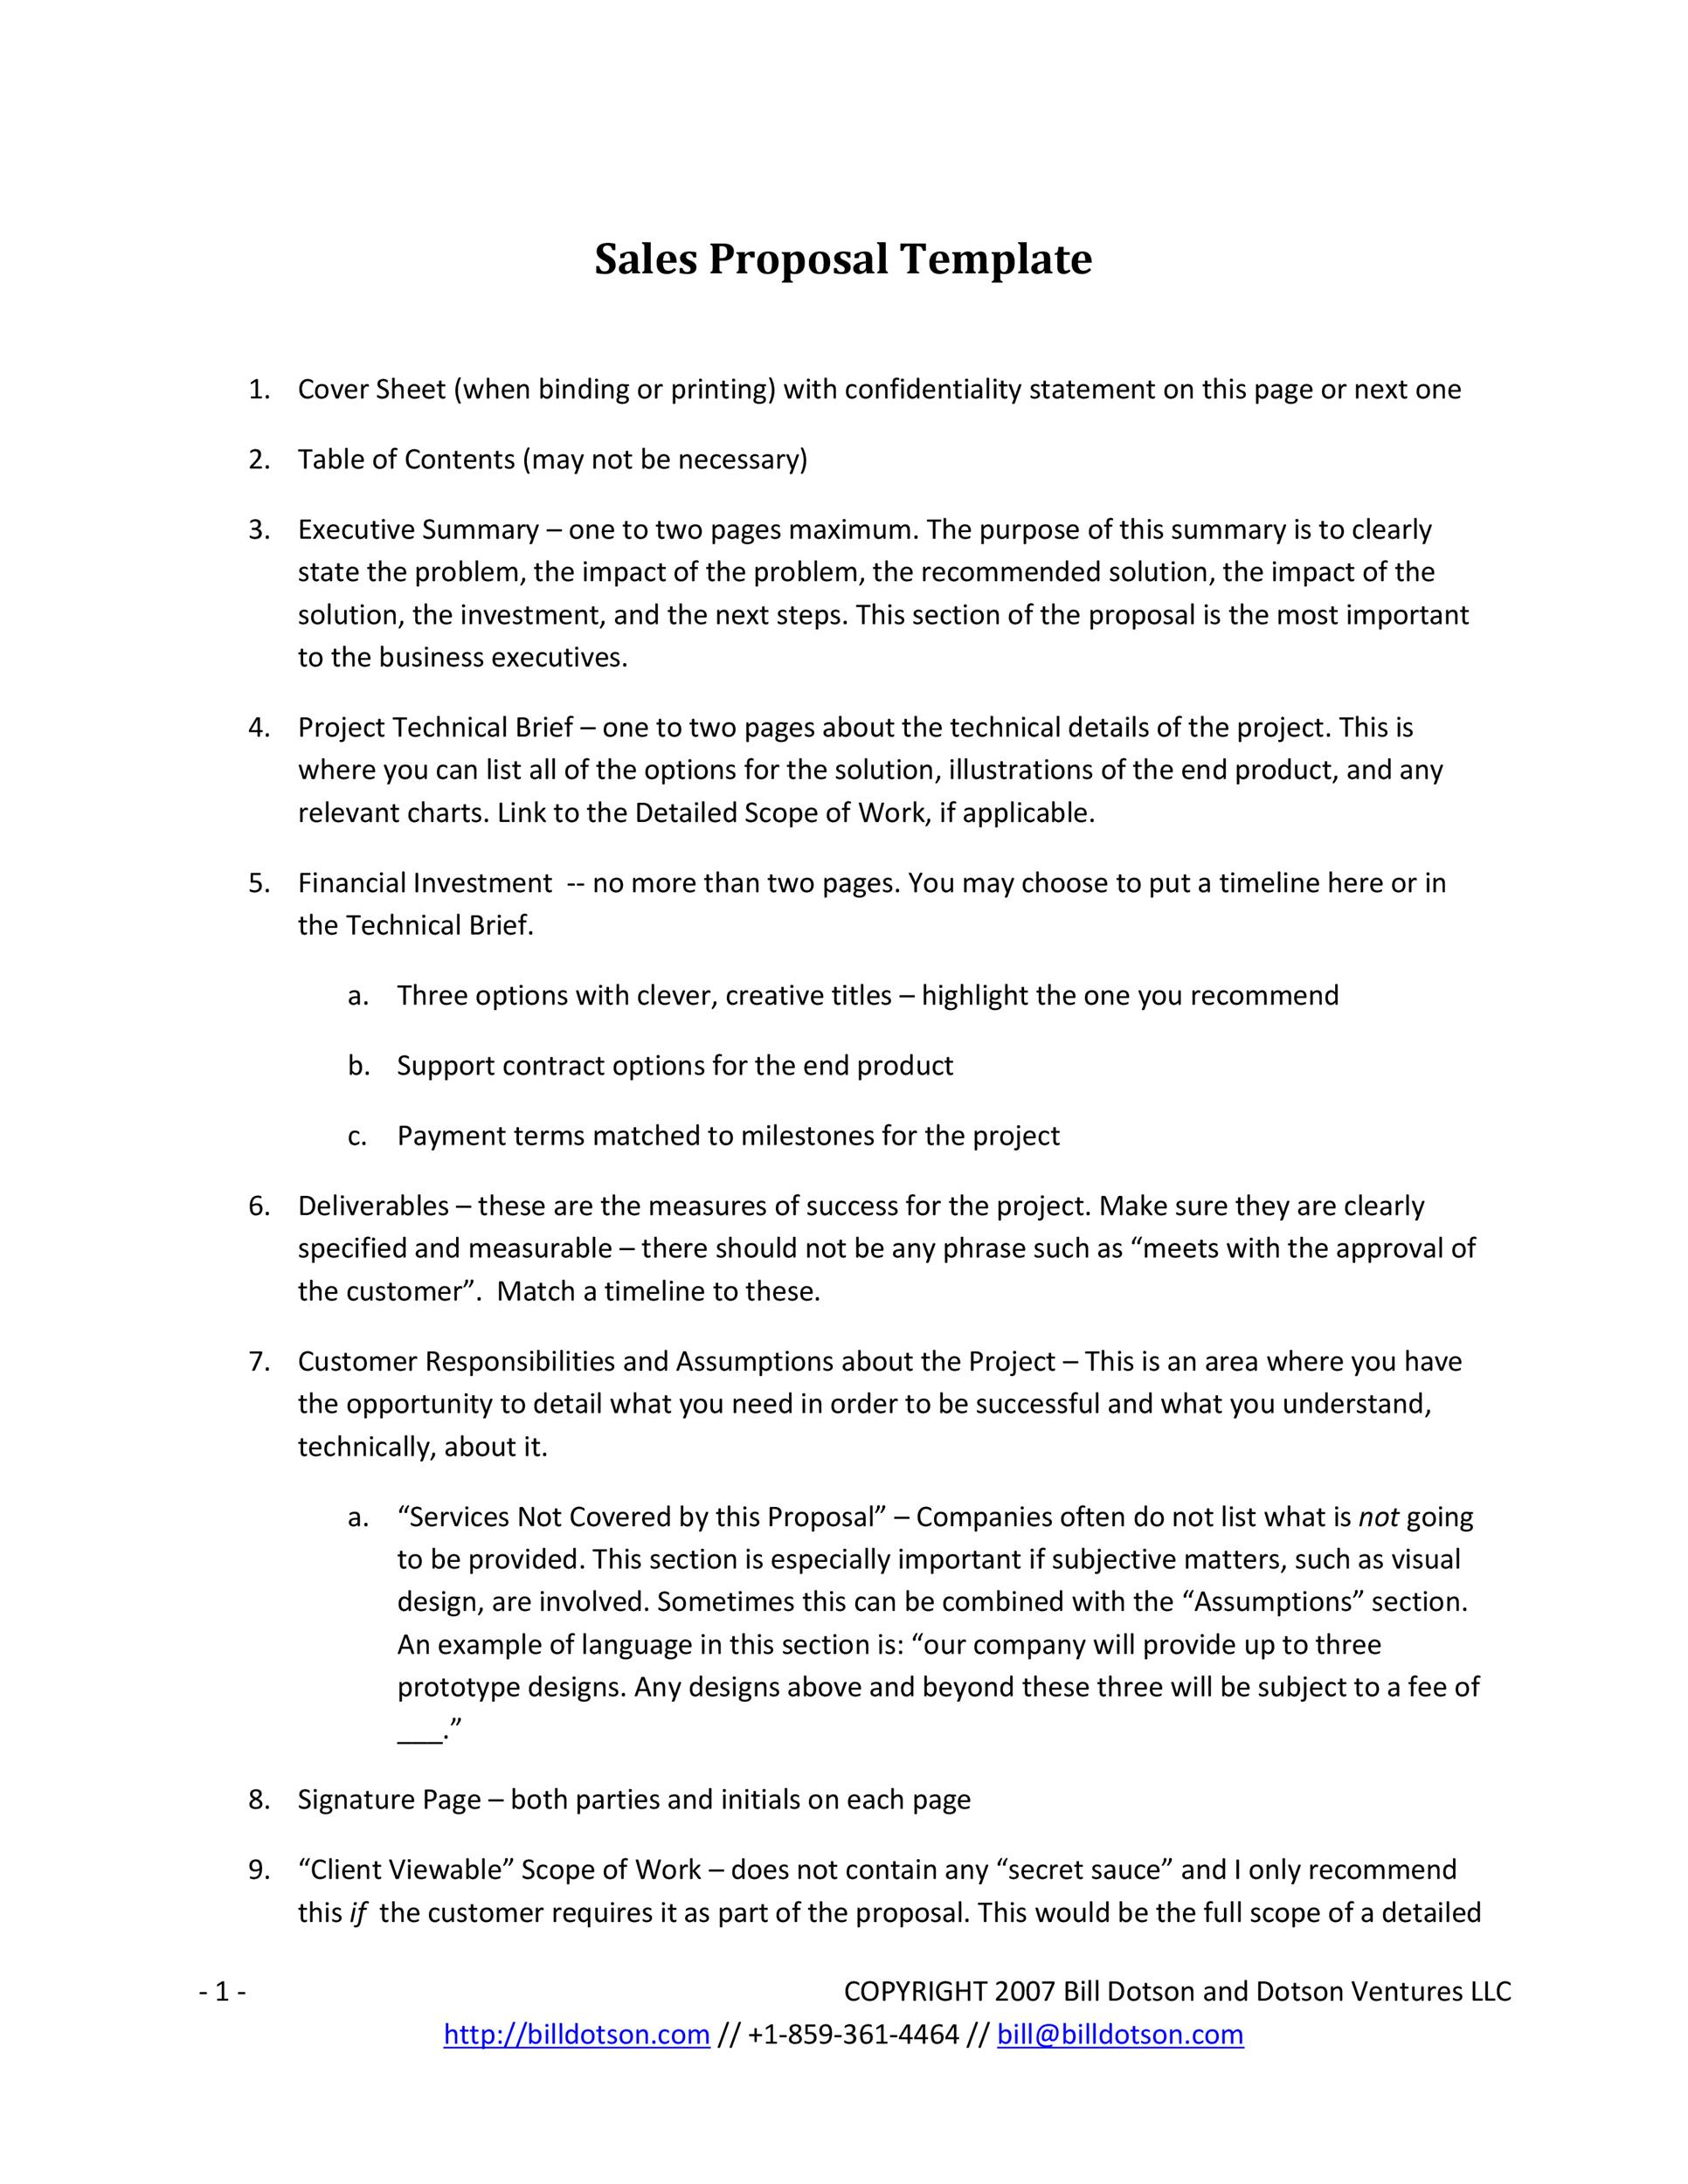 Business Proposal Letter To Client. Business Proposal Introduction